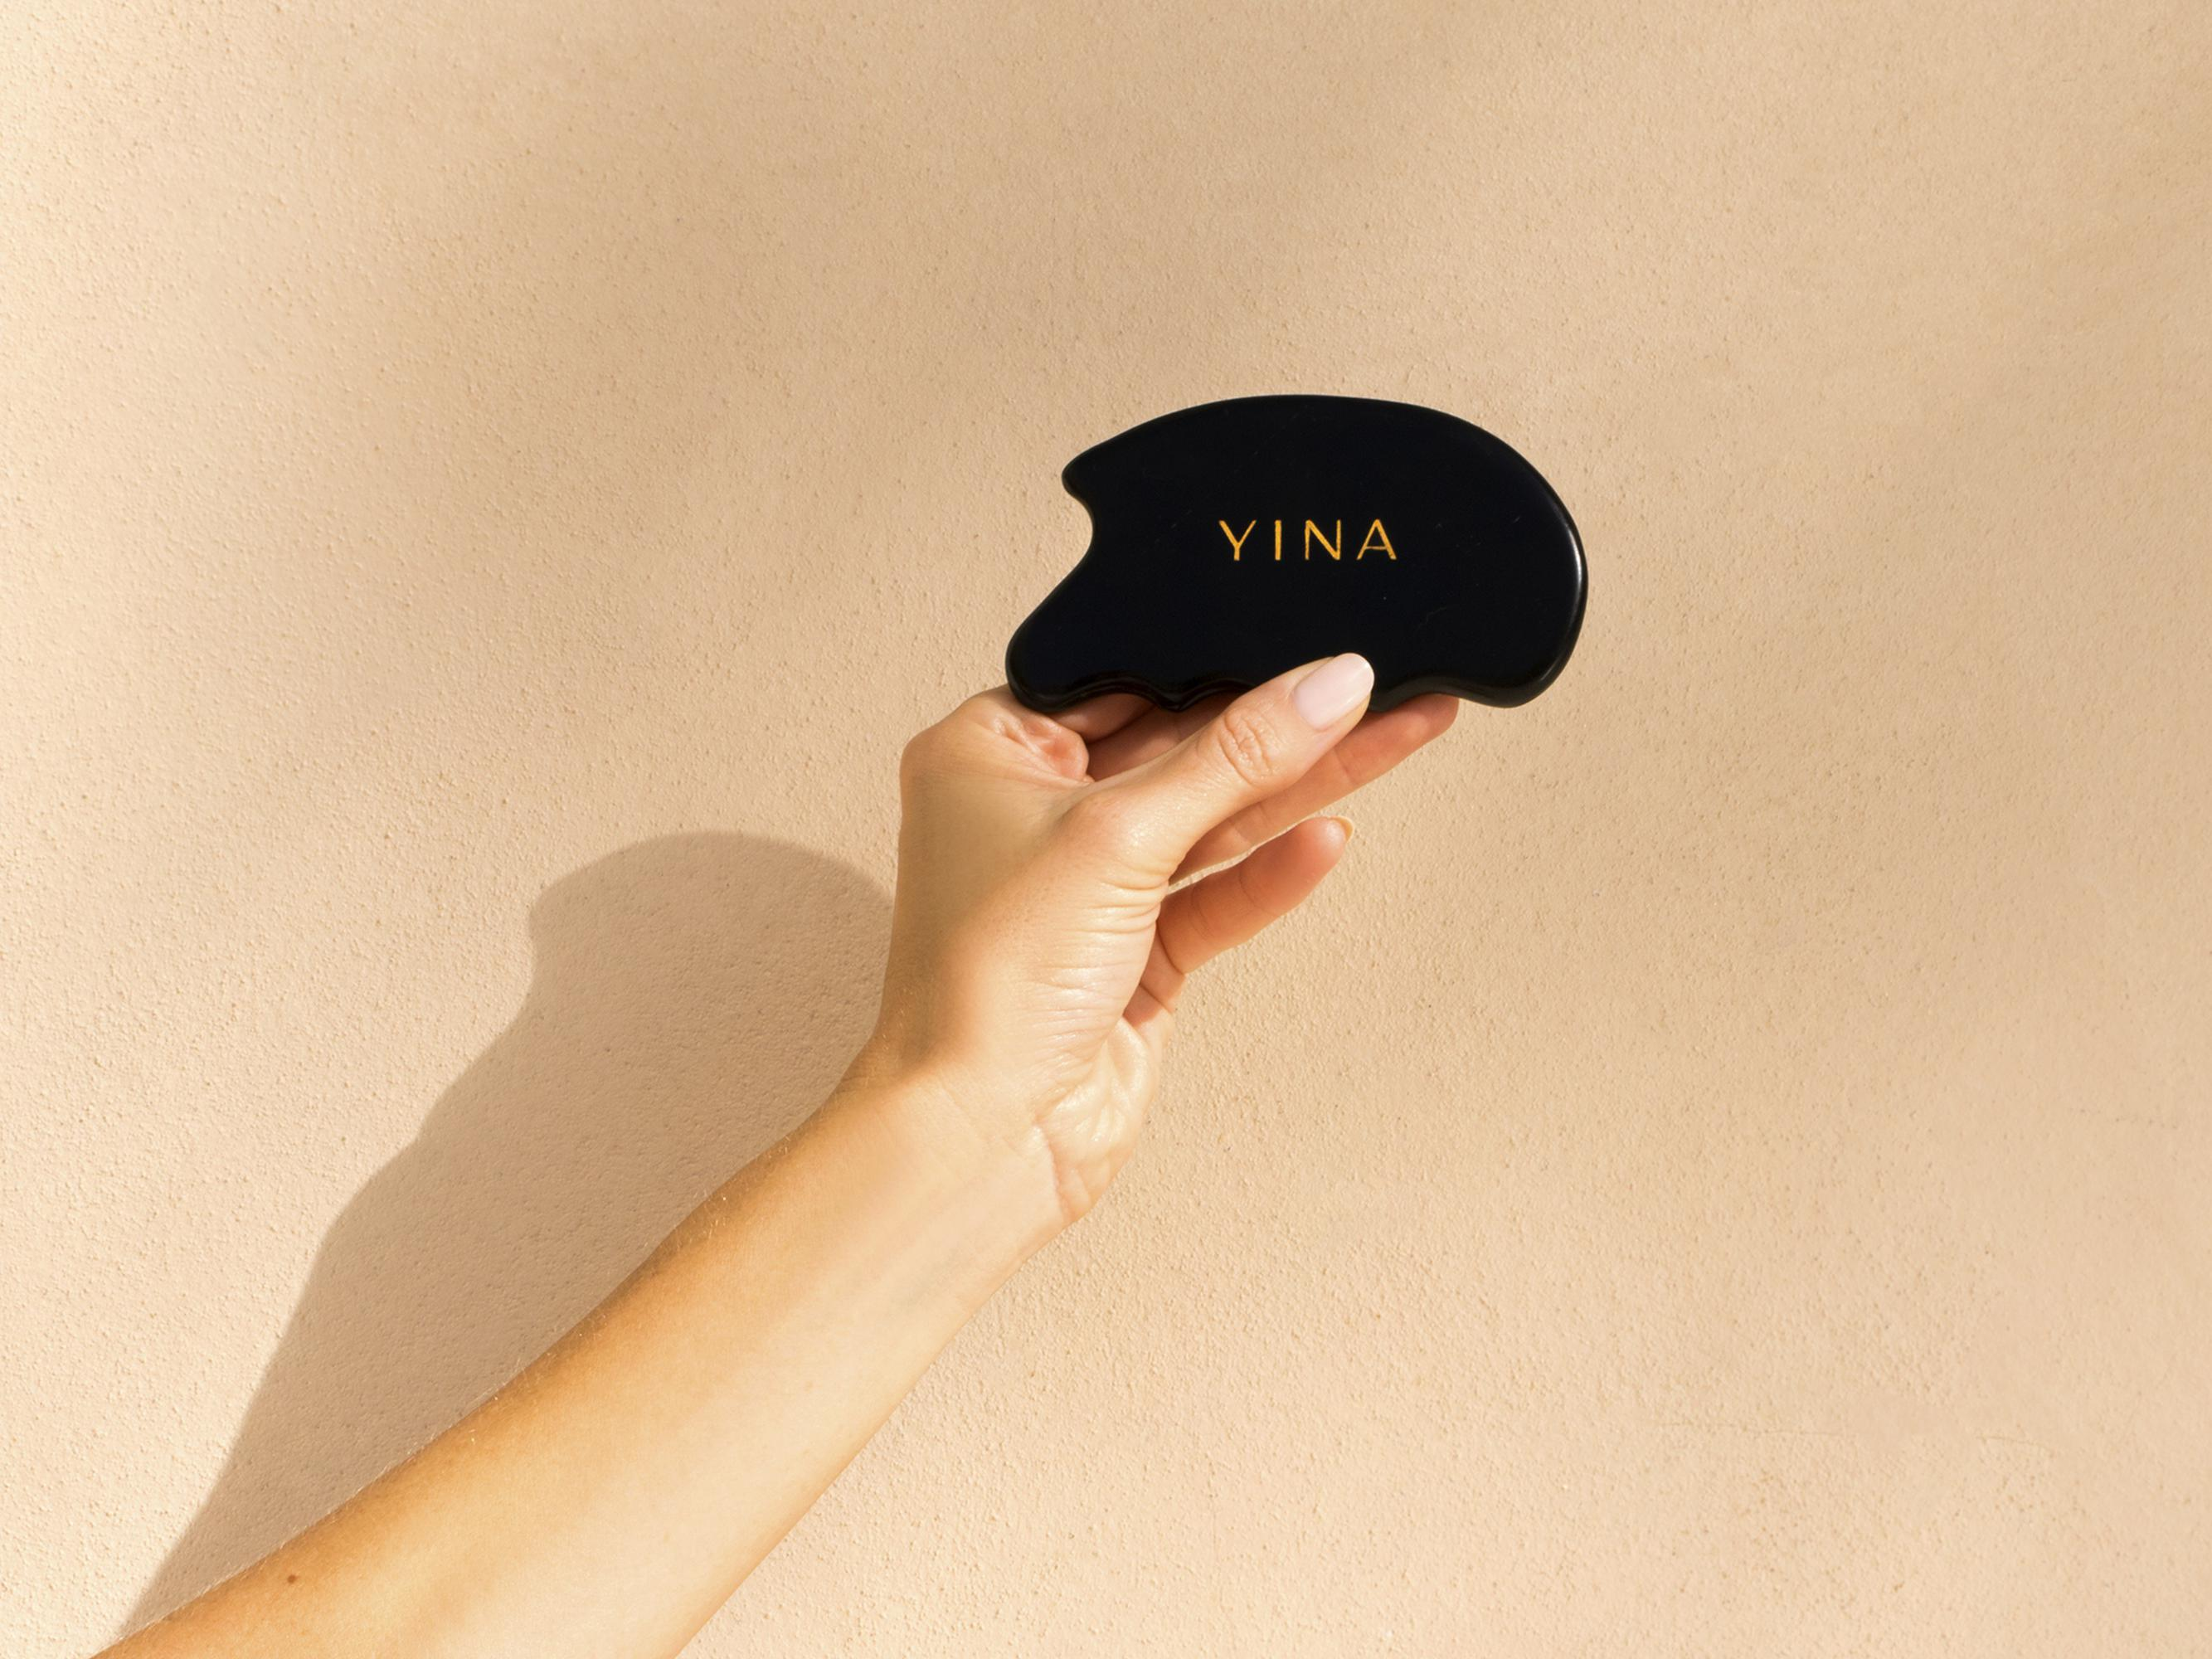 The art of gua sha: The tool has come a long way since its origins in China 2,500 years ago.